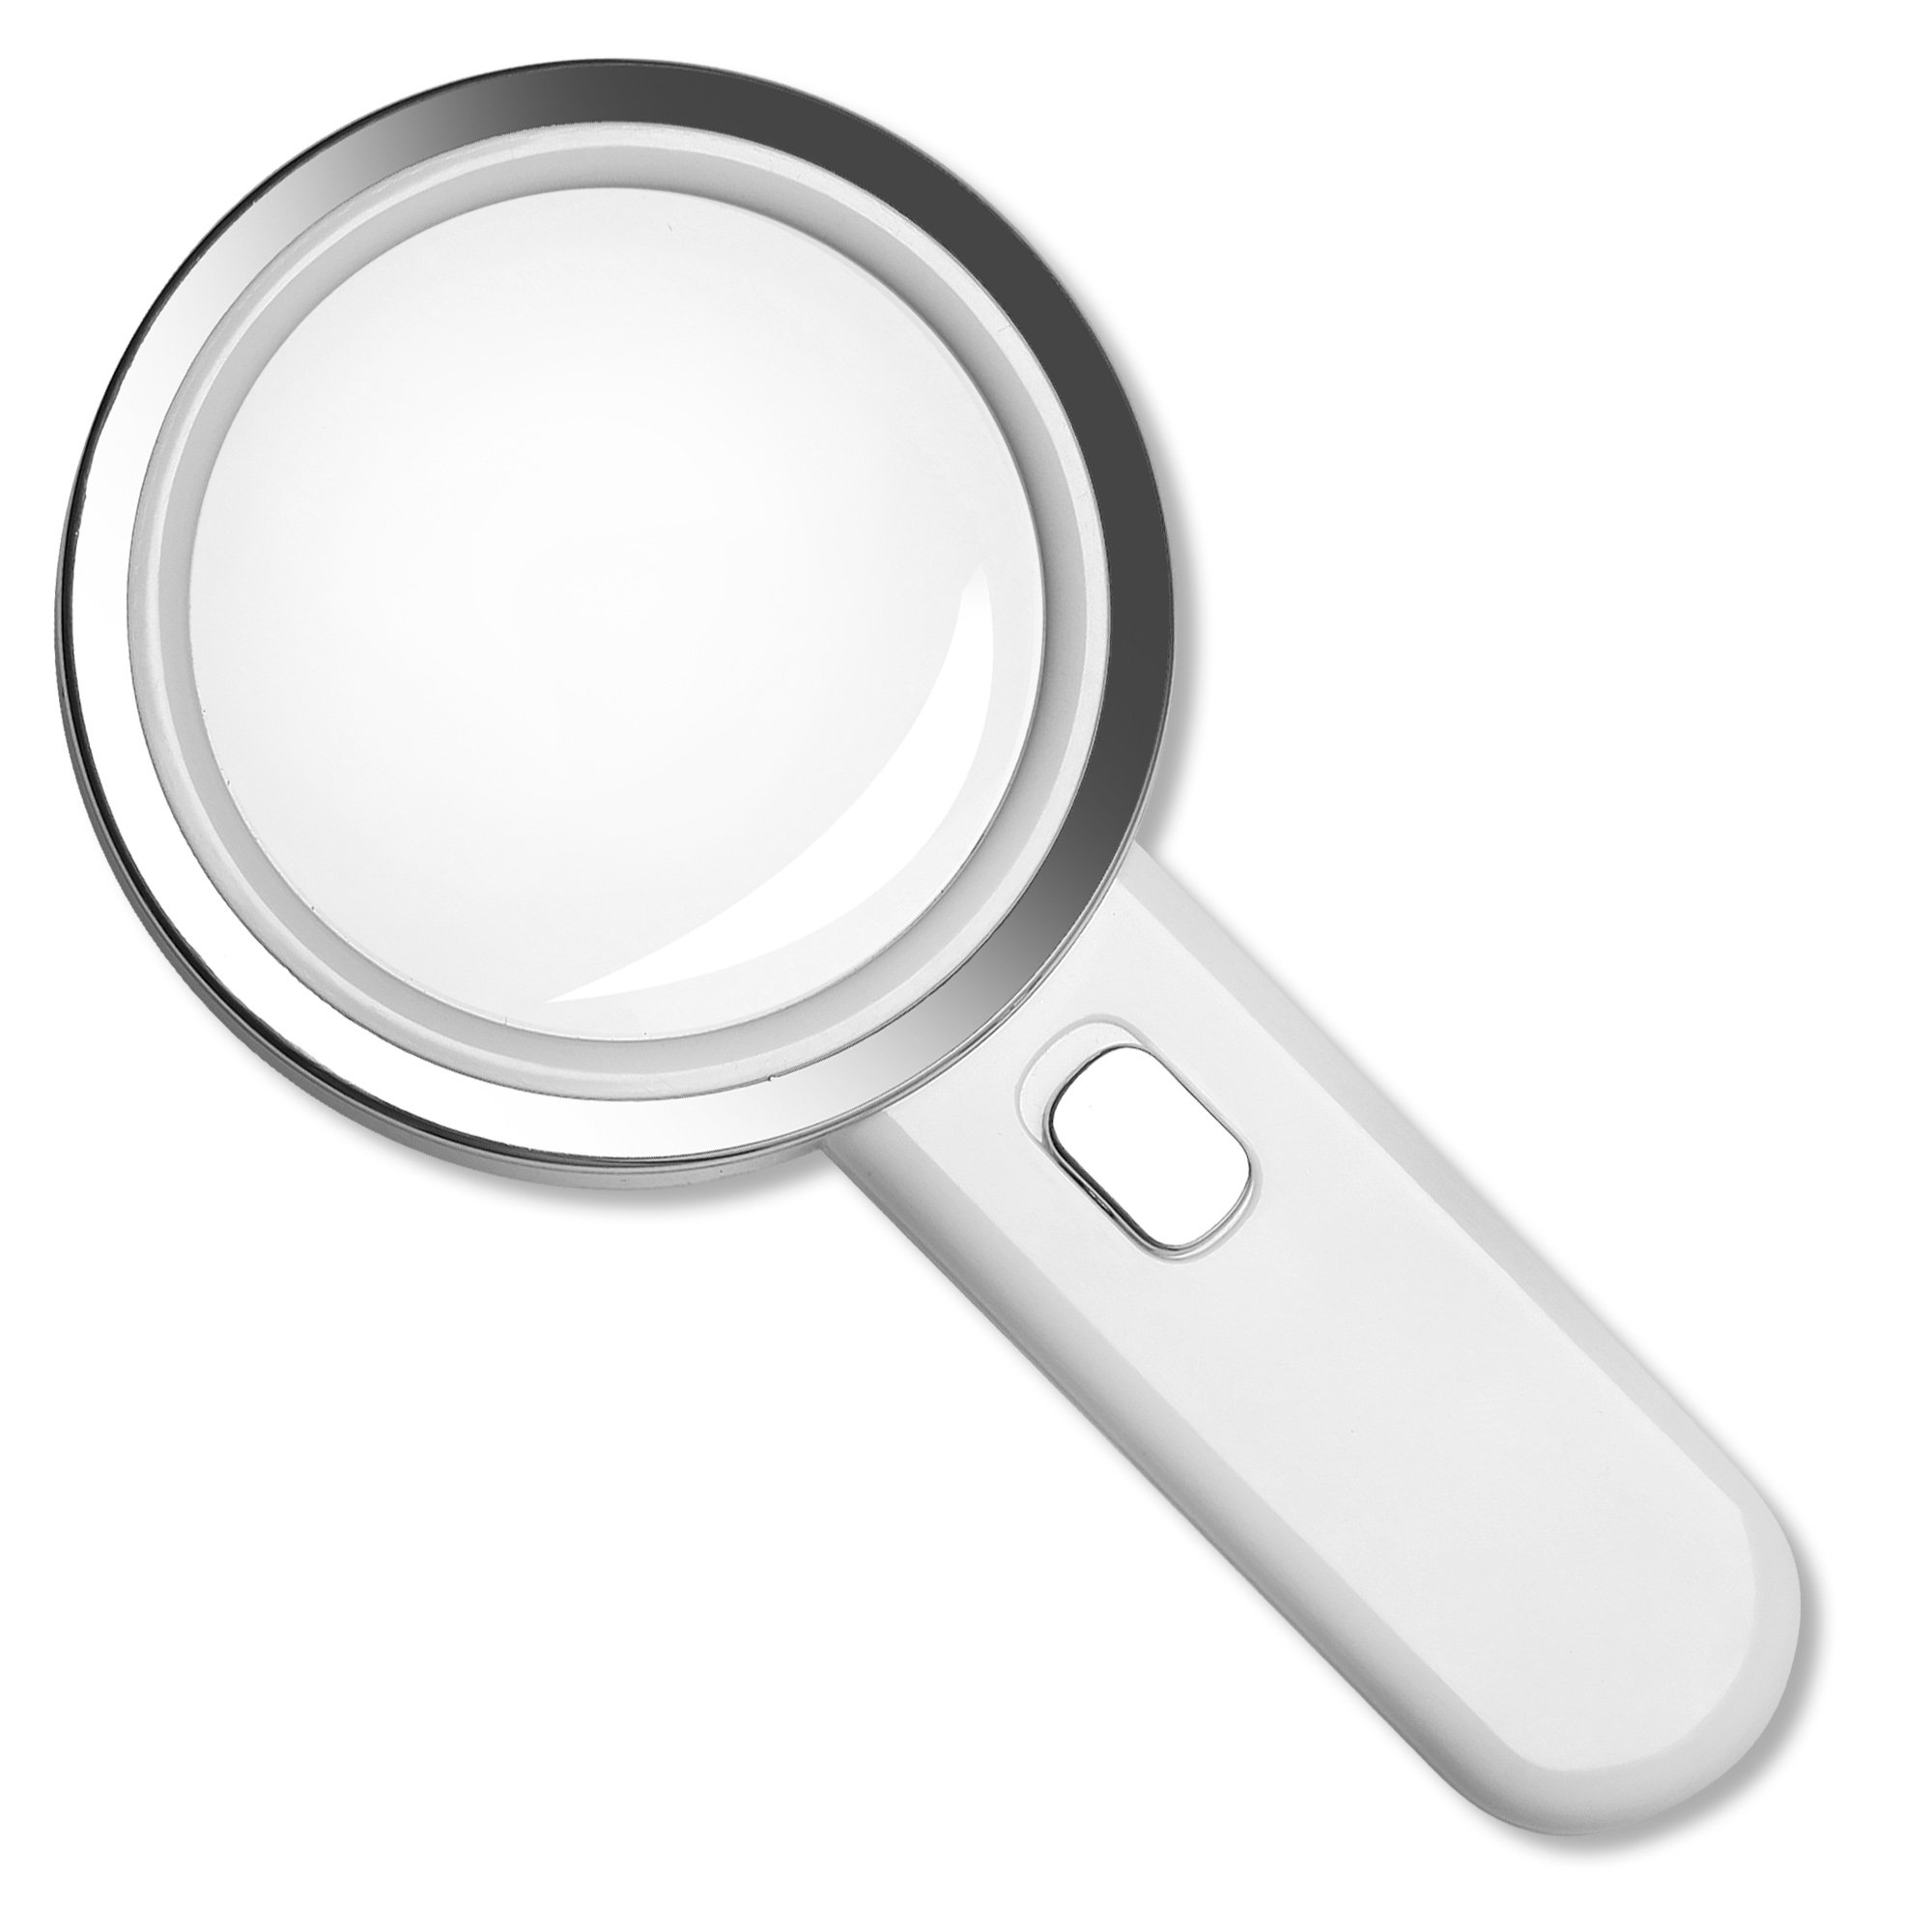 Fancii LED Magnifying Glass with Light, 5X High Power Glass Lens - Large 3.5 Inches Distortion-Free Illuminated Magnifier by Fancii